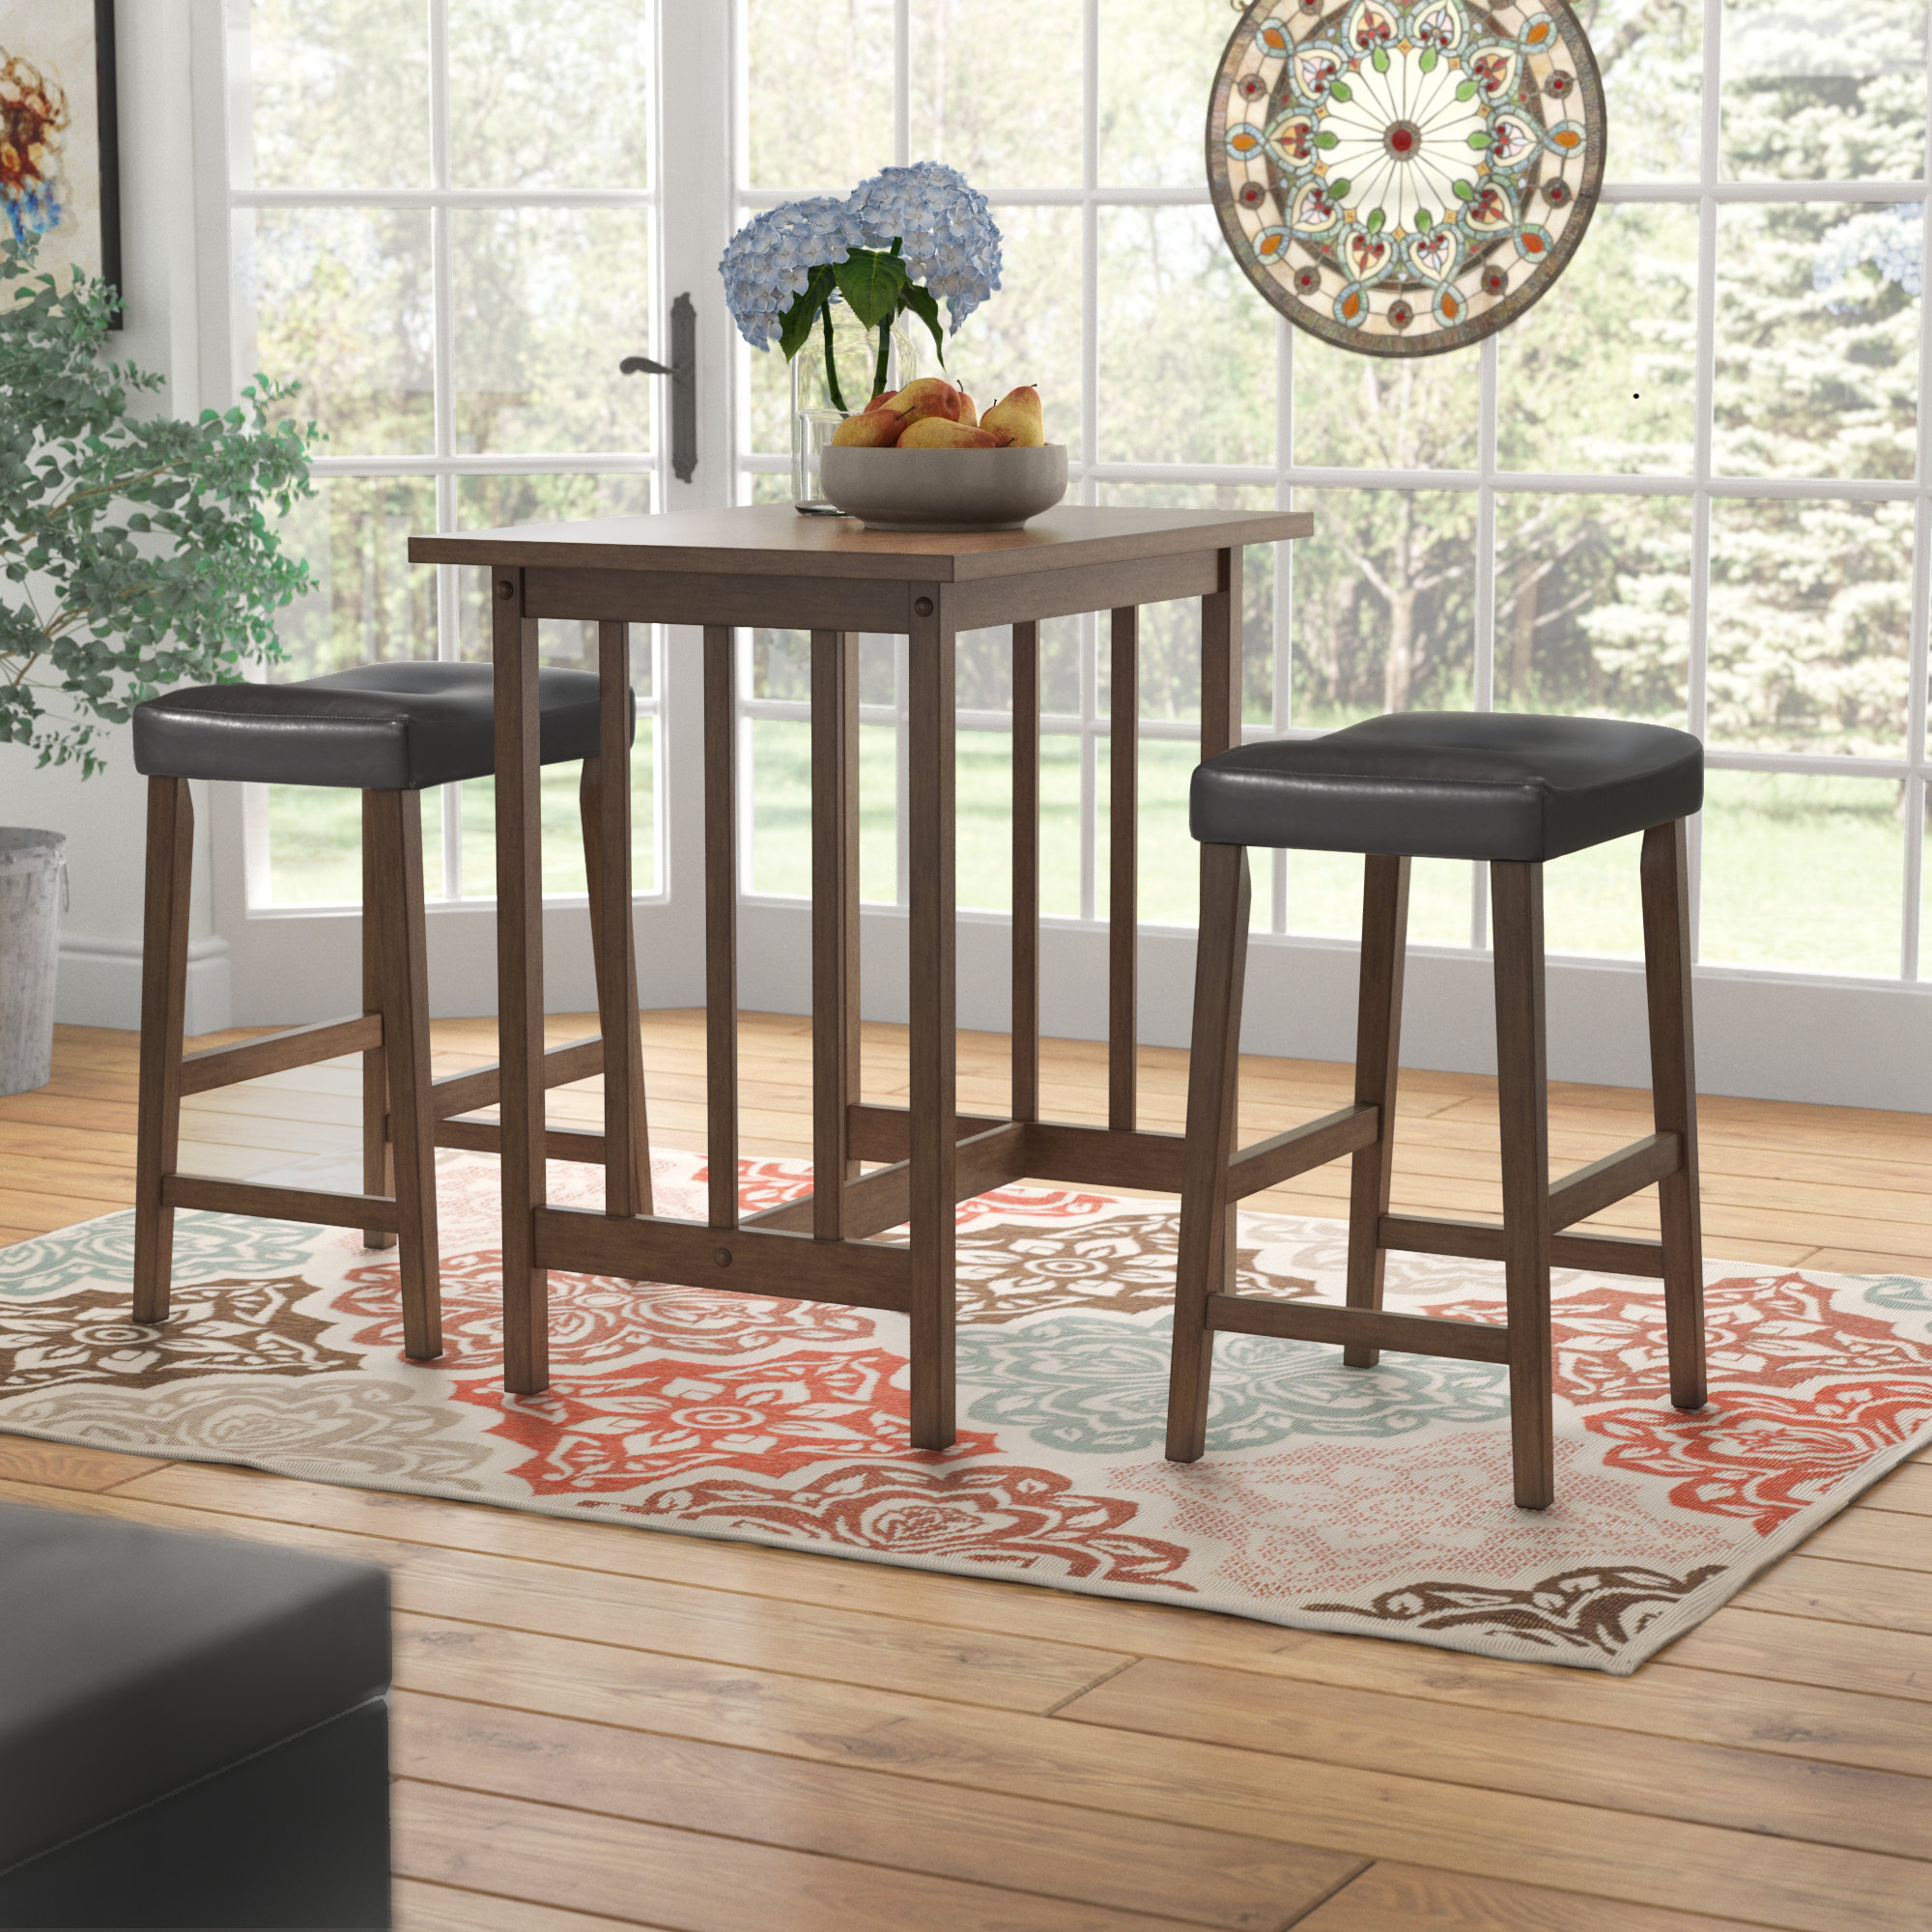 Lonon 3 Piece Dining Sets With Well Liked Hood Canal 3 Piece Dining Set (View 9 of 20)